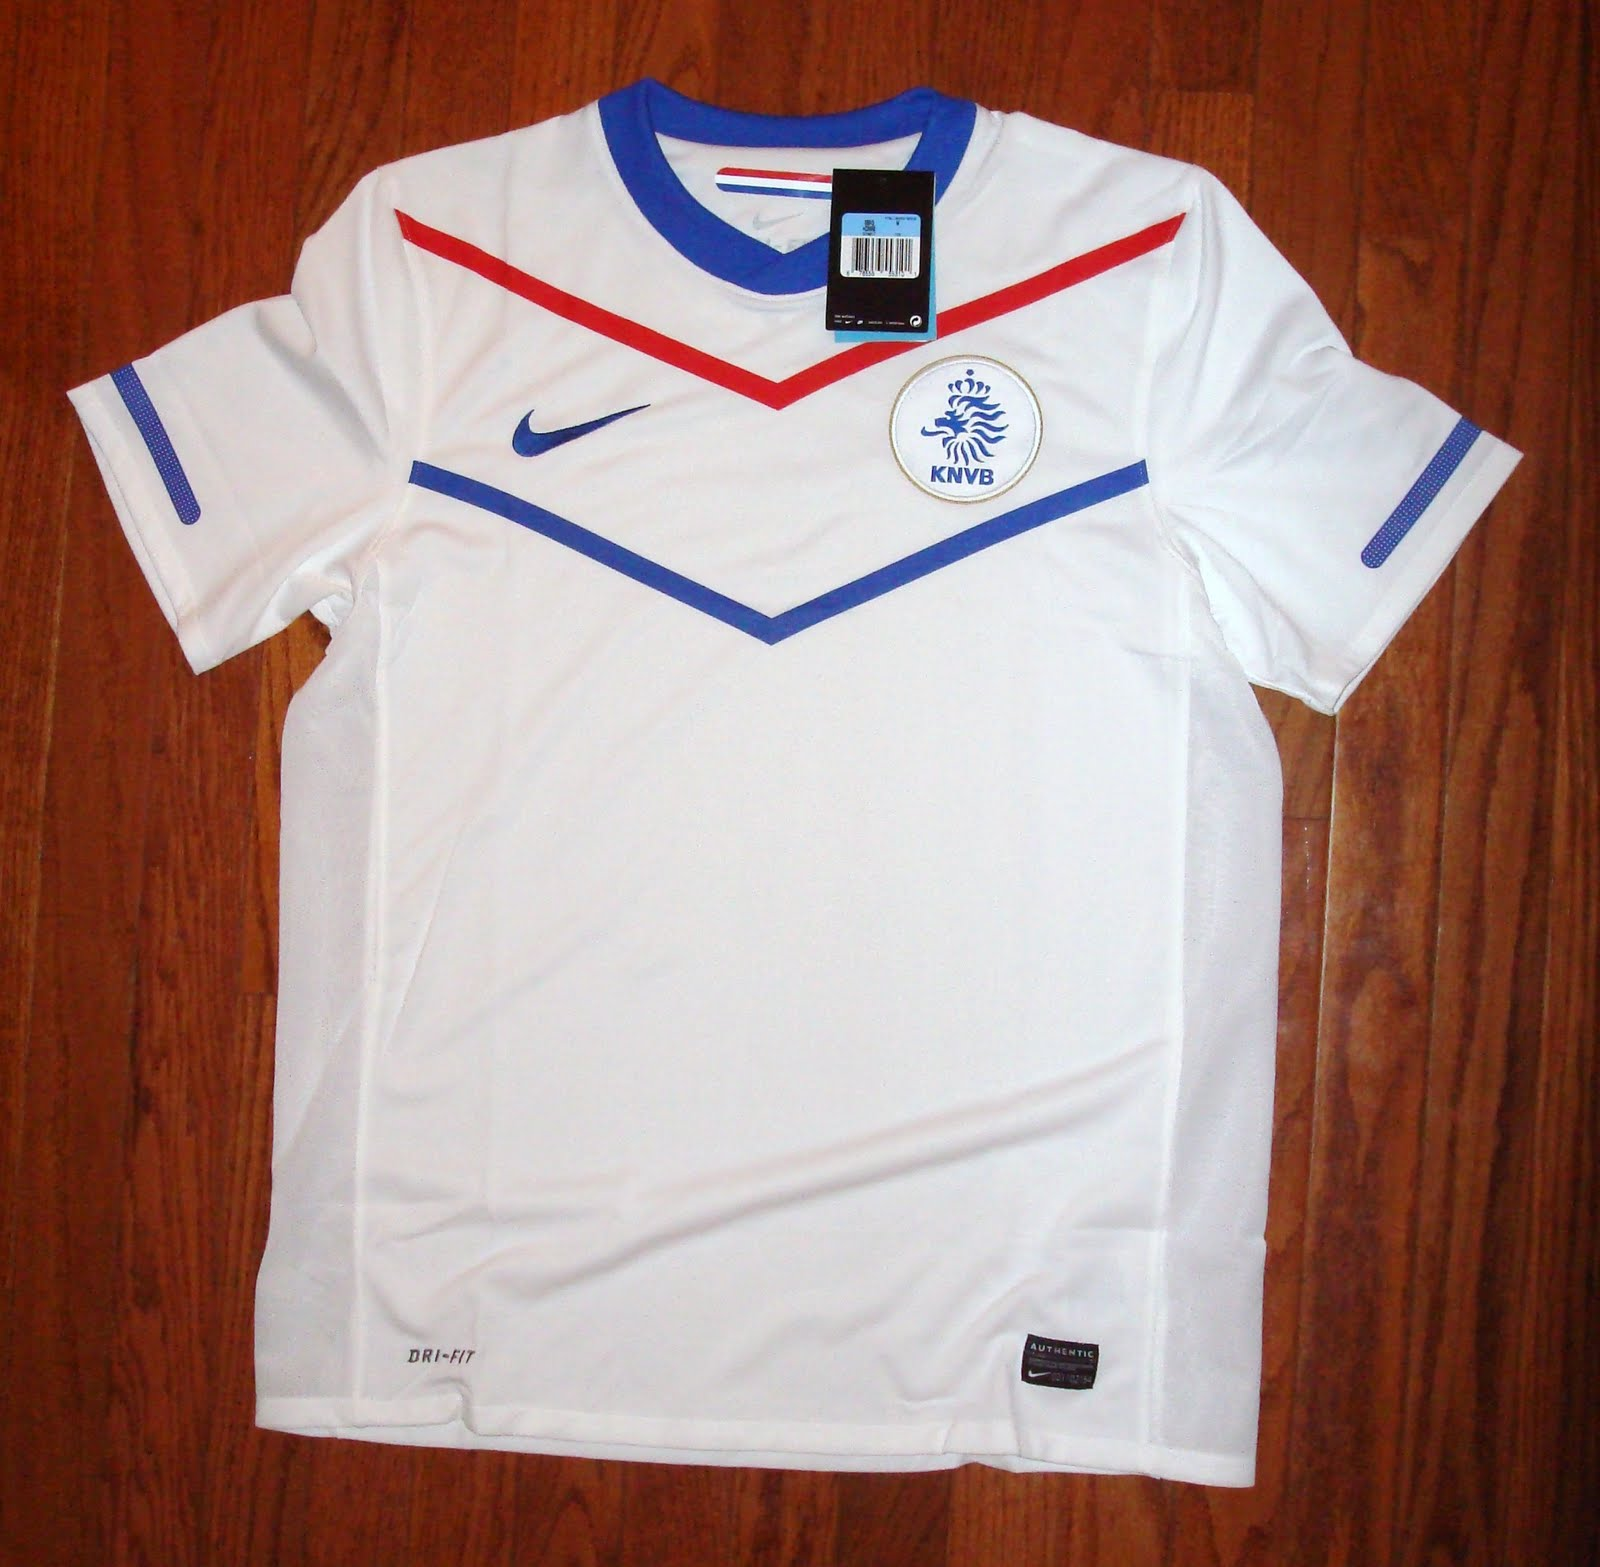 9a55e50f3 SuperSTAR Sports: WORLD CUP 2010 - Official Jerseys